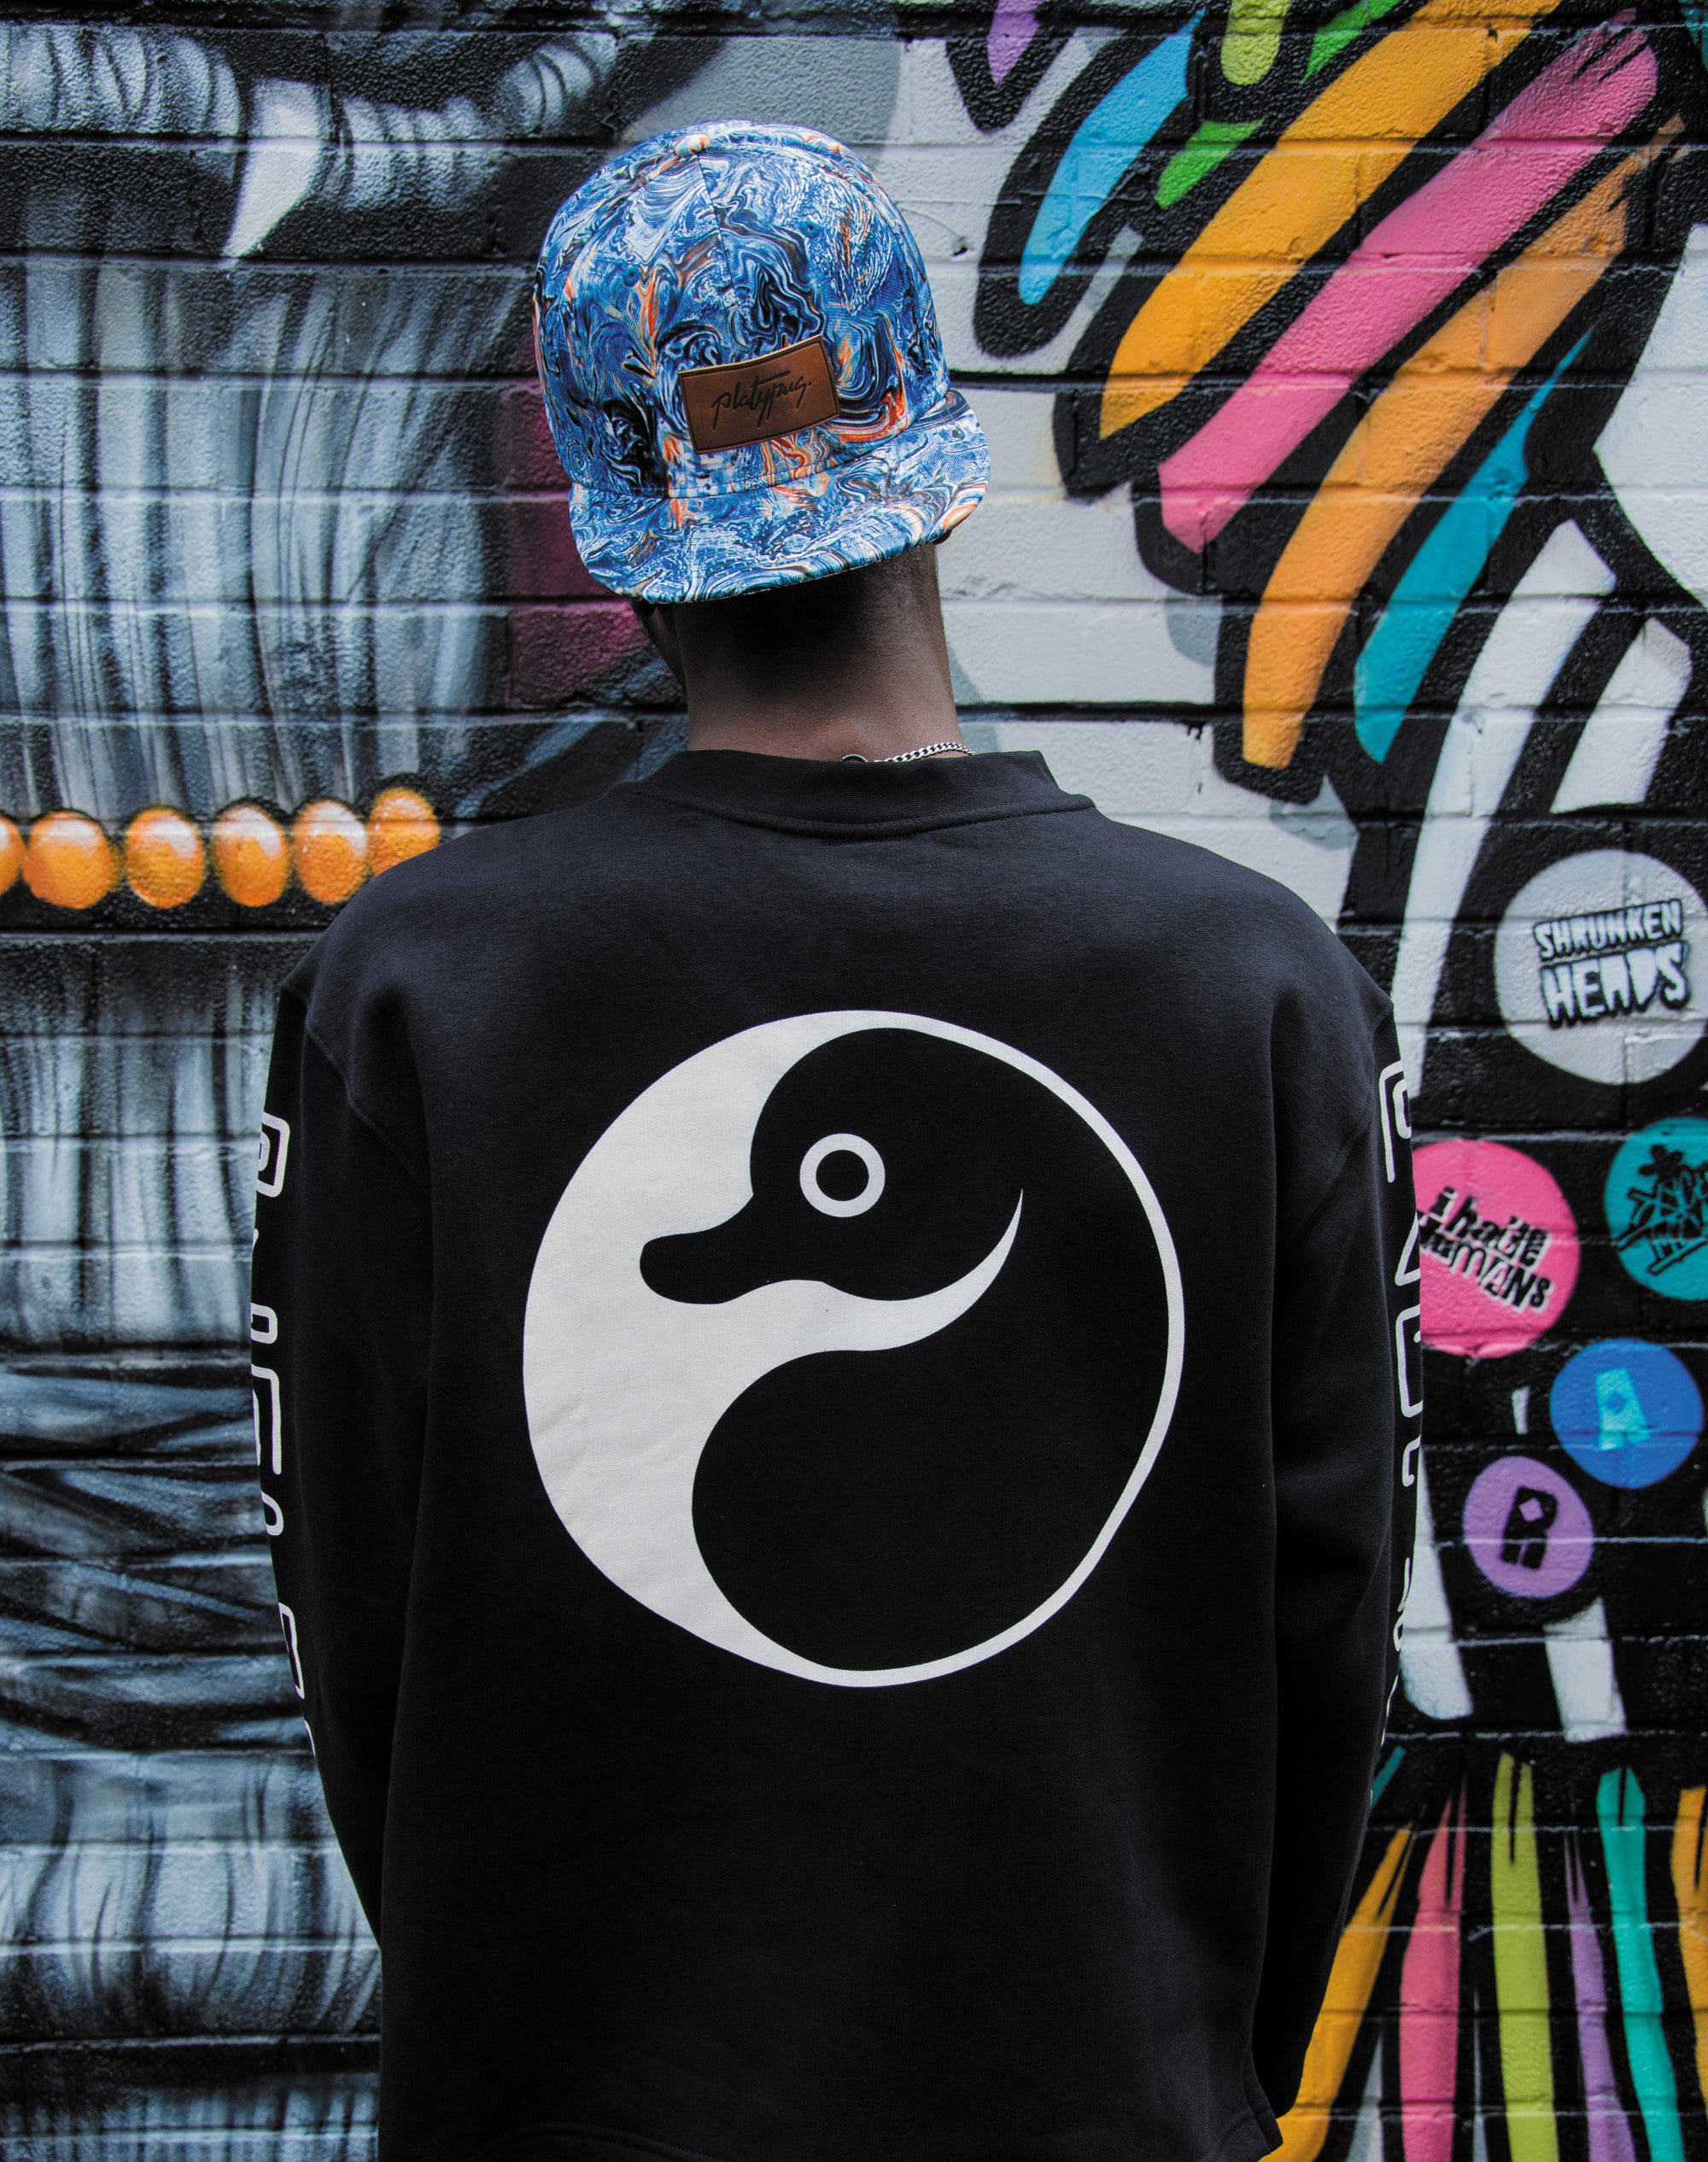 Platypus Streetwear clothing - Yin Yang open sleeve Sweatshirt with Typographic arm design